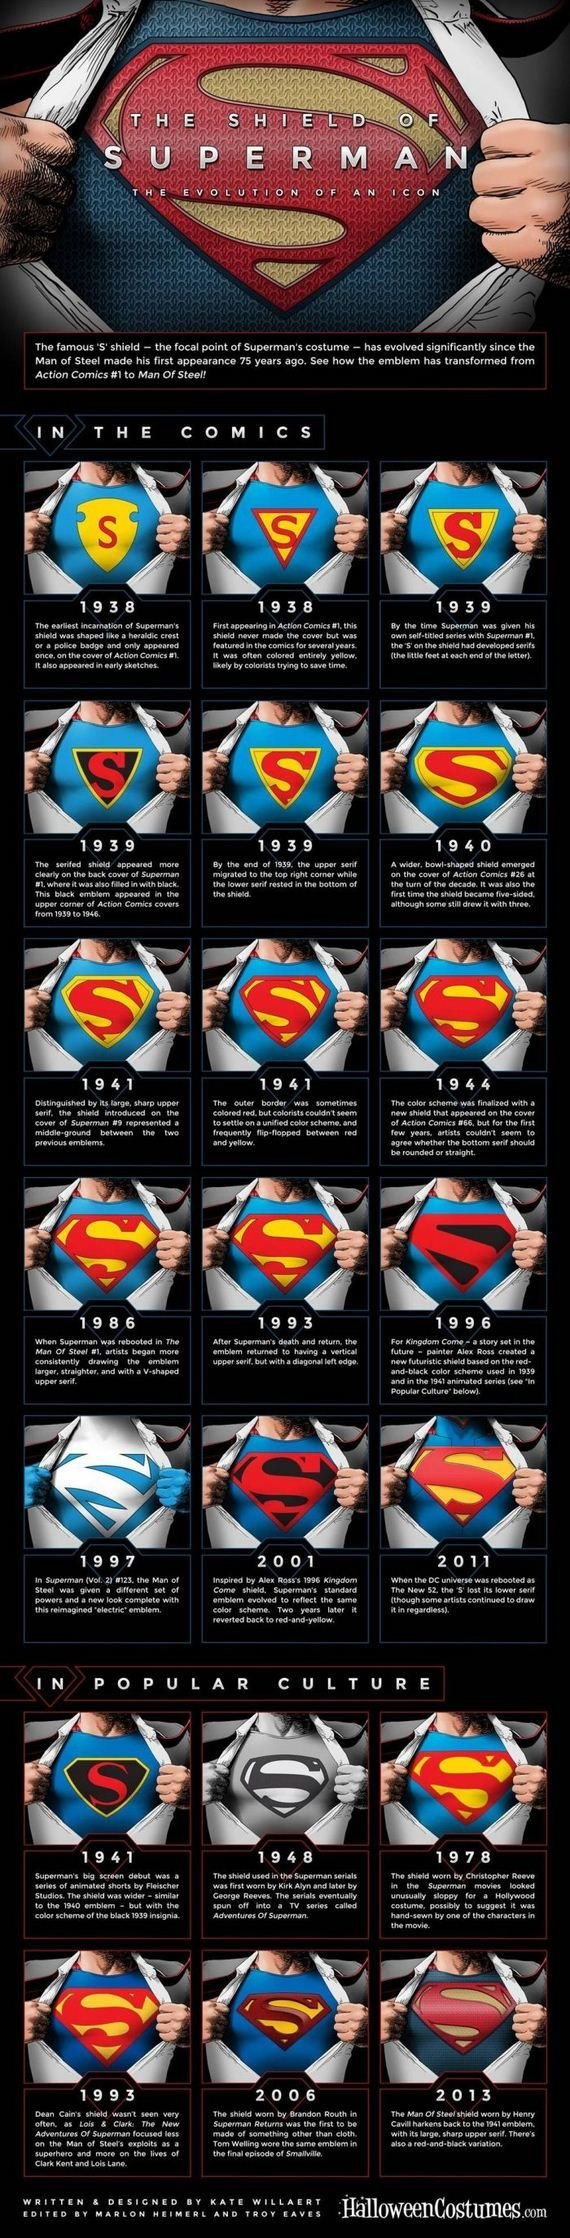 The-Evolution-Of-Supermans-S